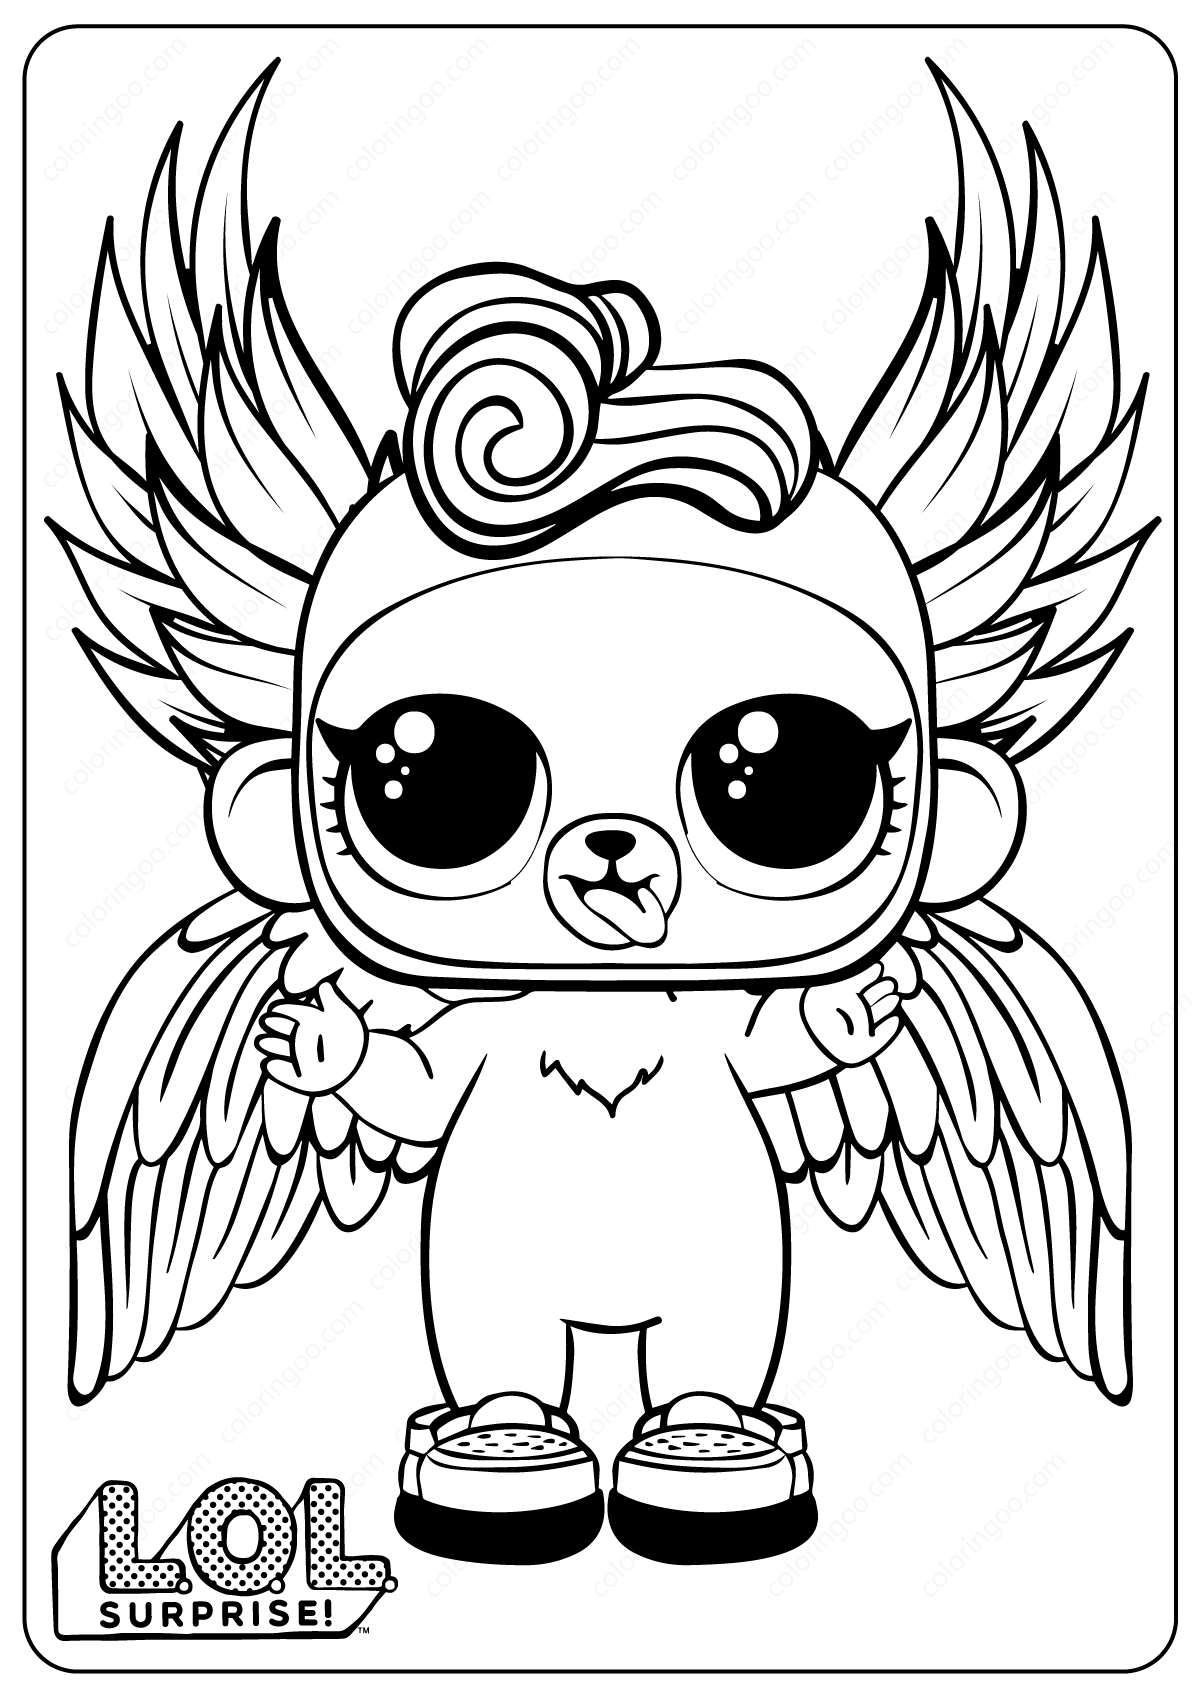 Free Printable LOL Surprise Monkey Coloring Pages